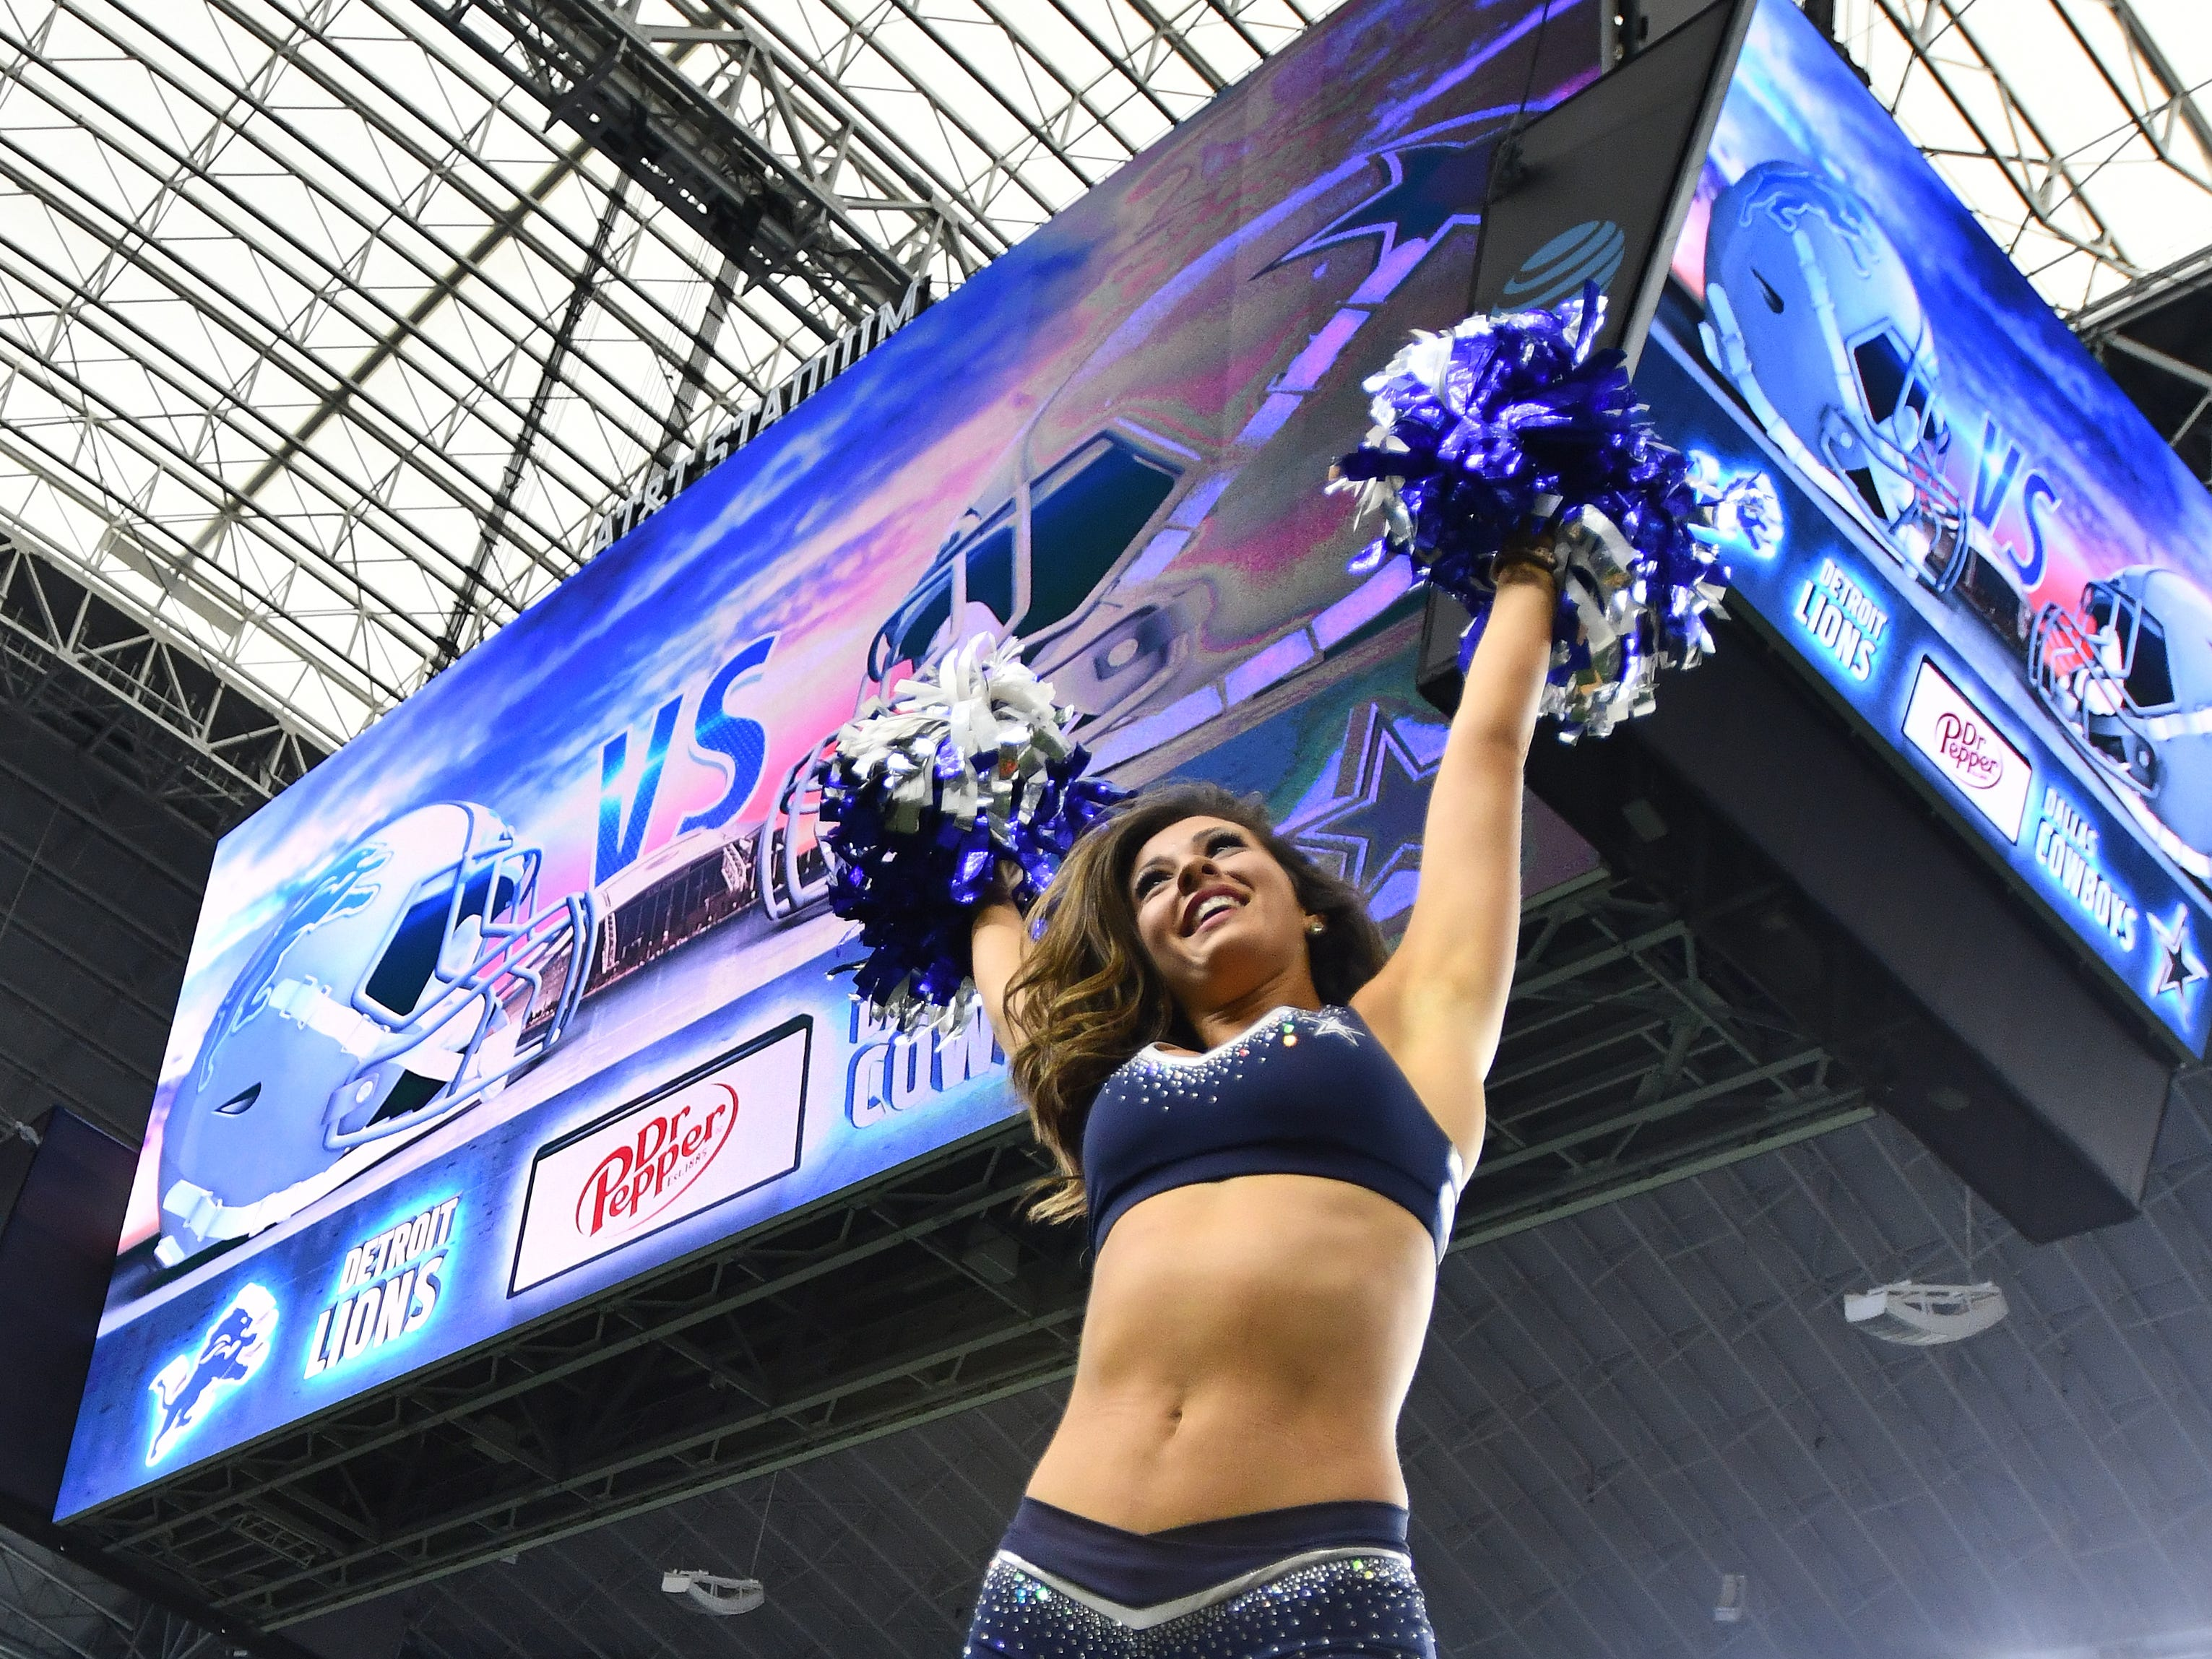 Dallas Cowboy Cheerleaders warm up early Sunday morning before the Detroit Lions take on the Dallas Cowboys at AT&T Stadium in Arlington, Texas on September 30, 2018